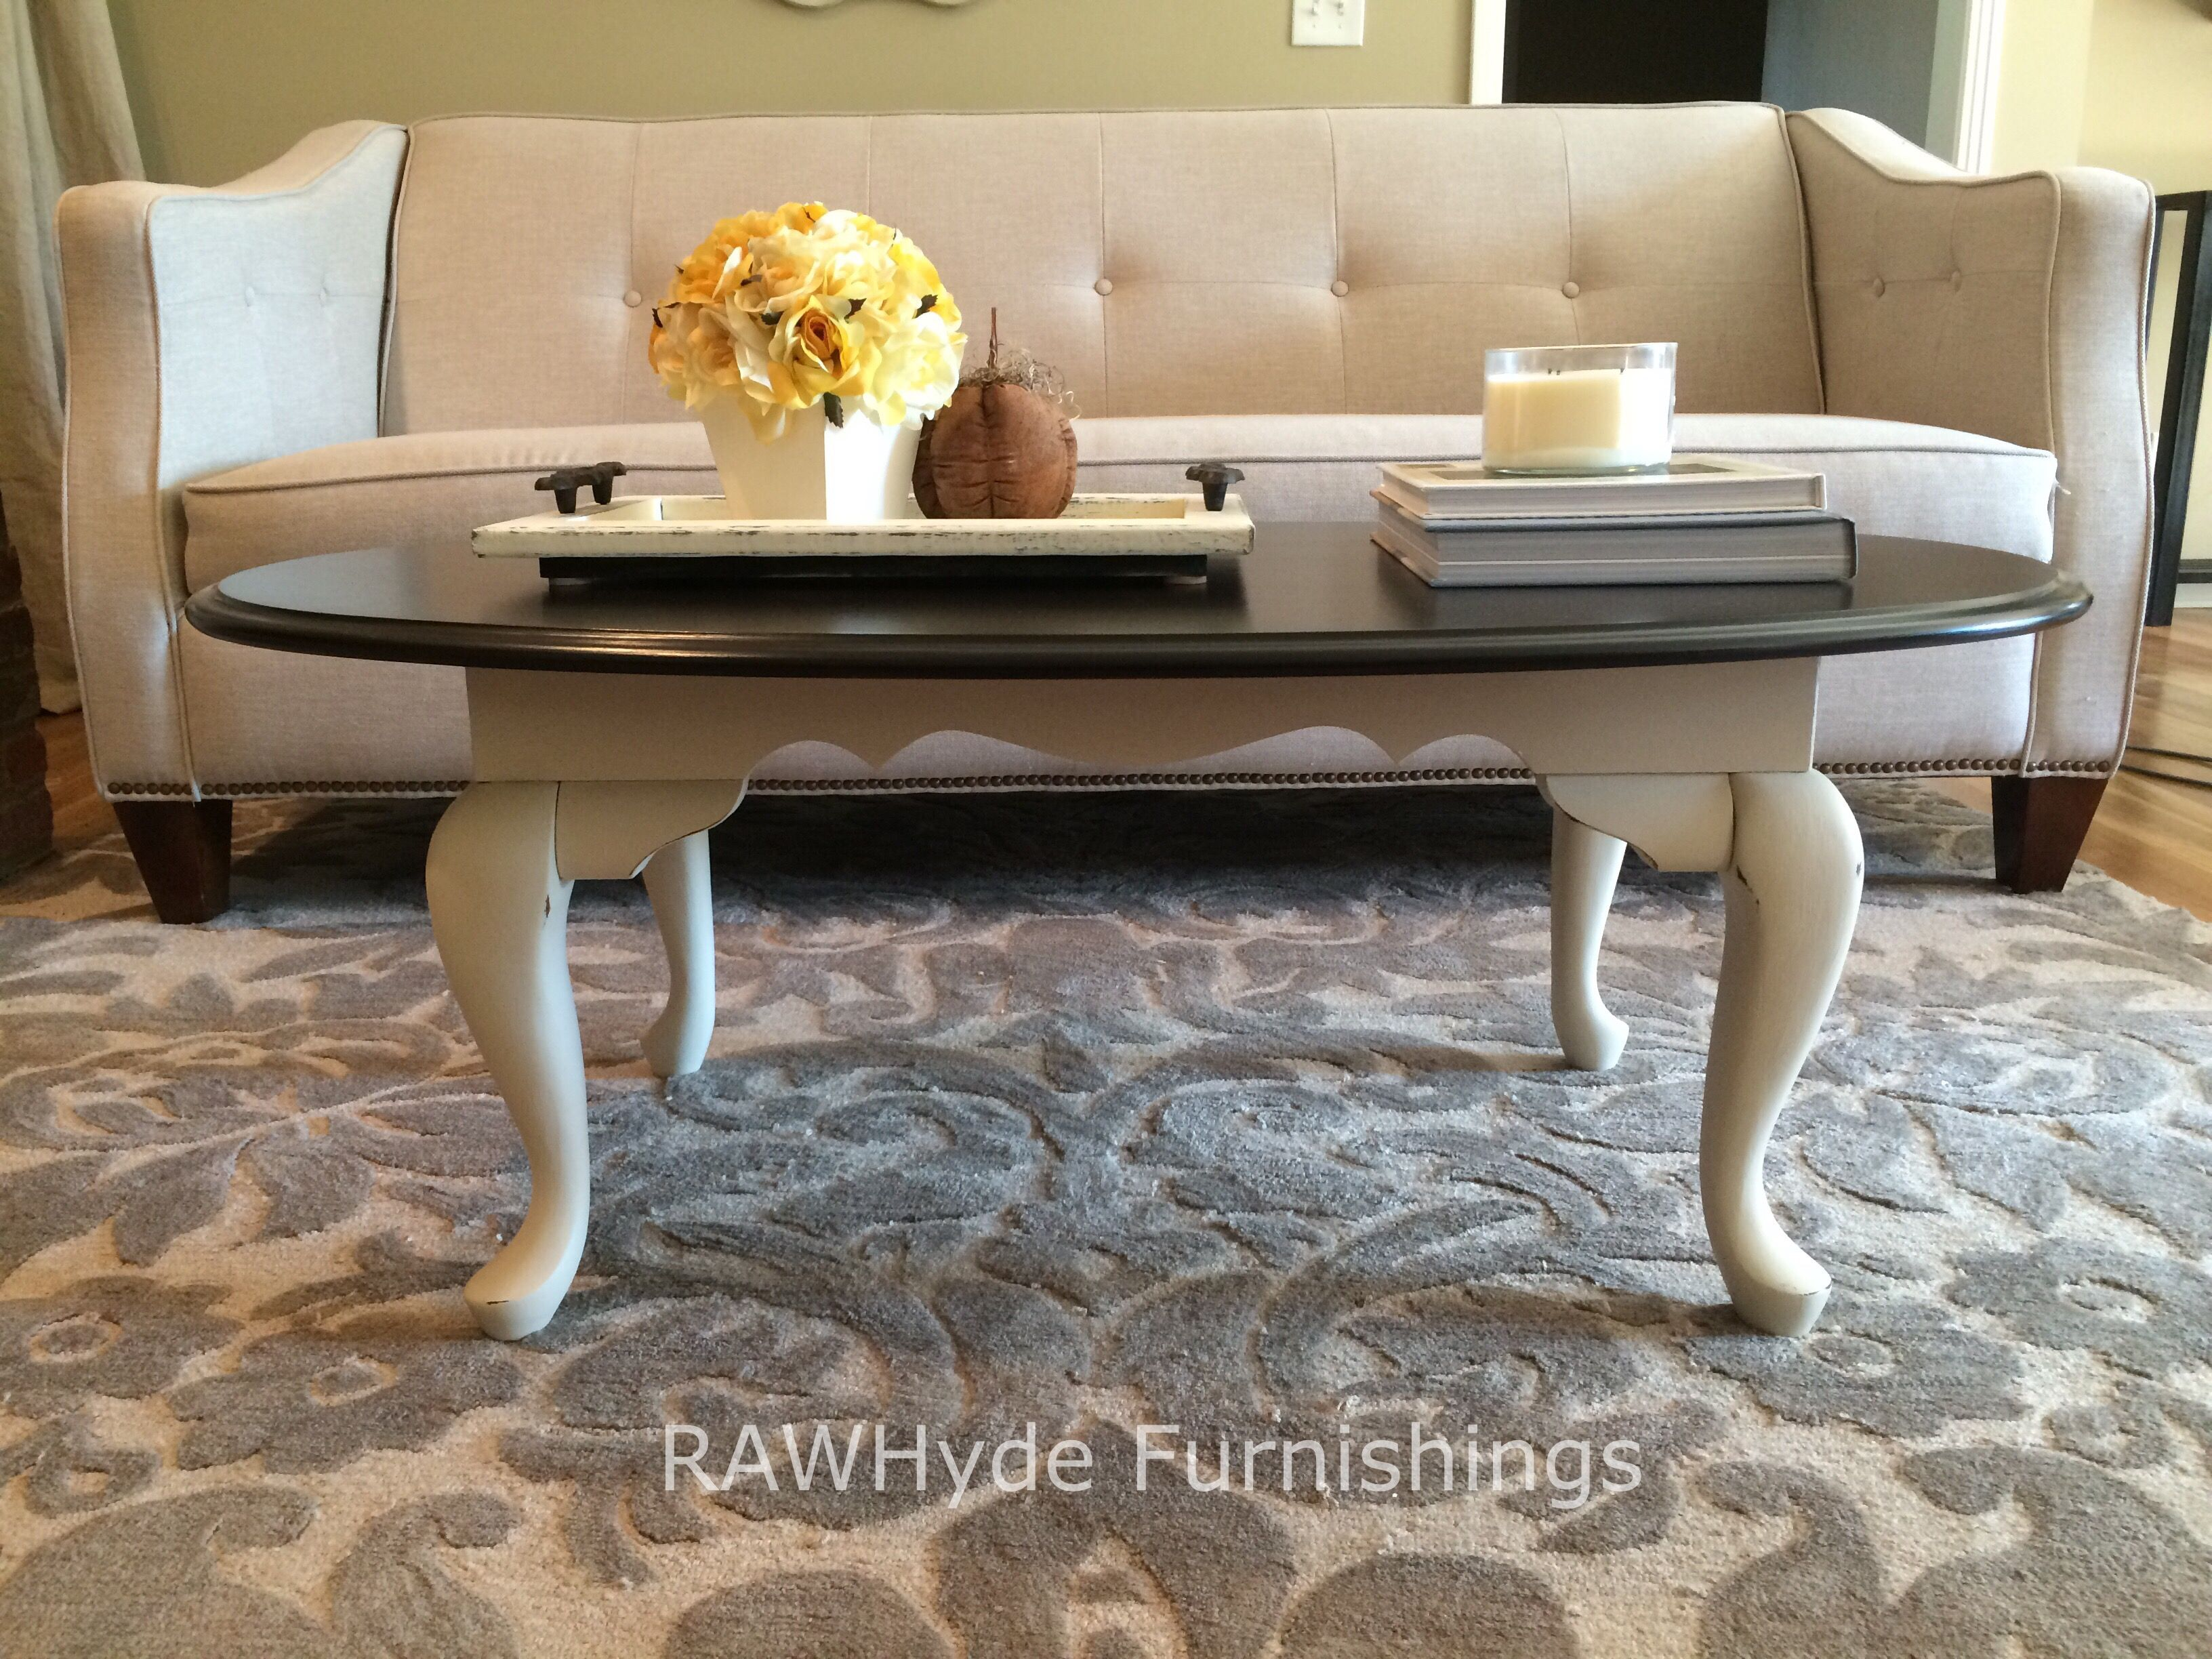 Queen Anne style coffee table painted white with light distressing